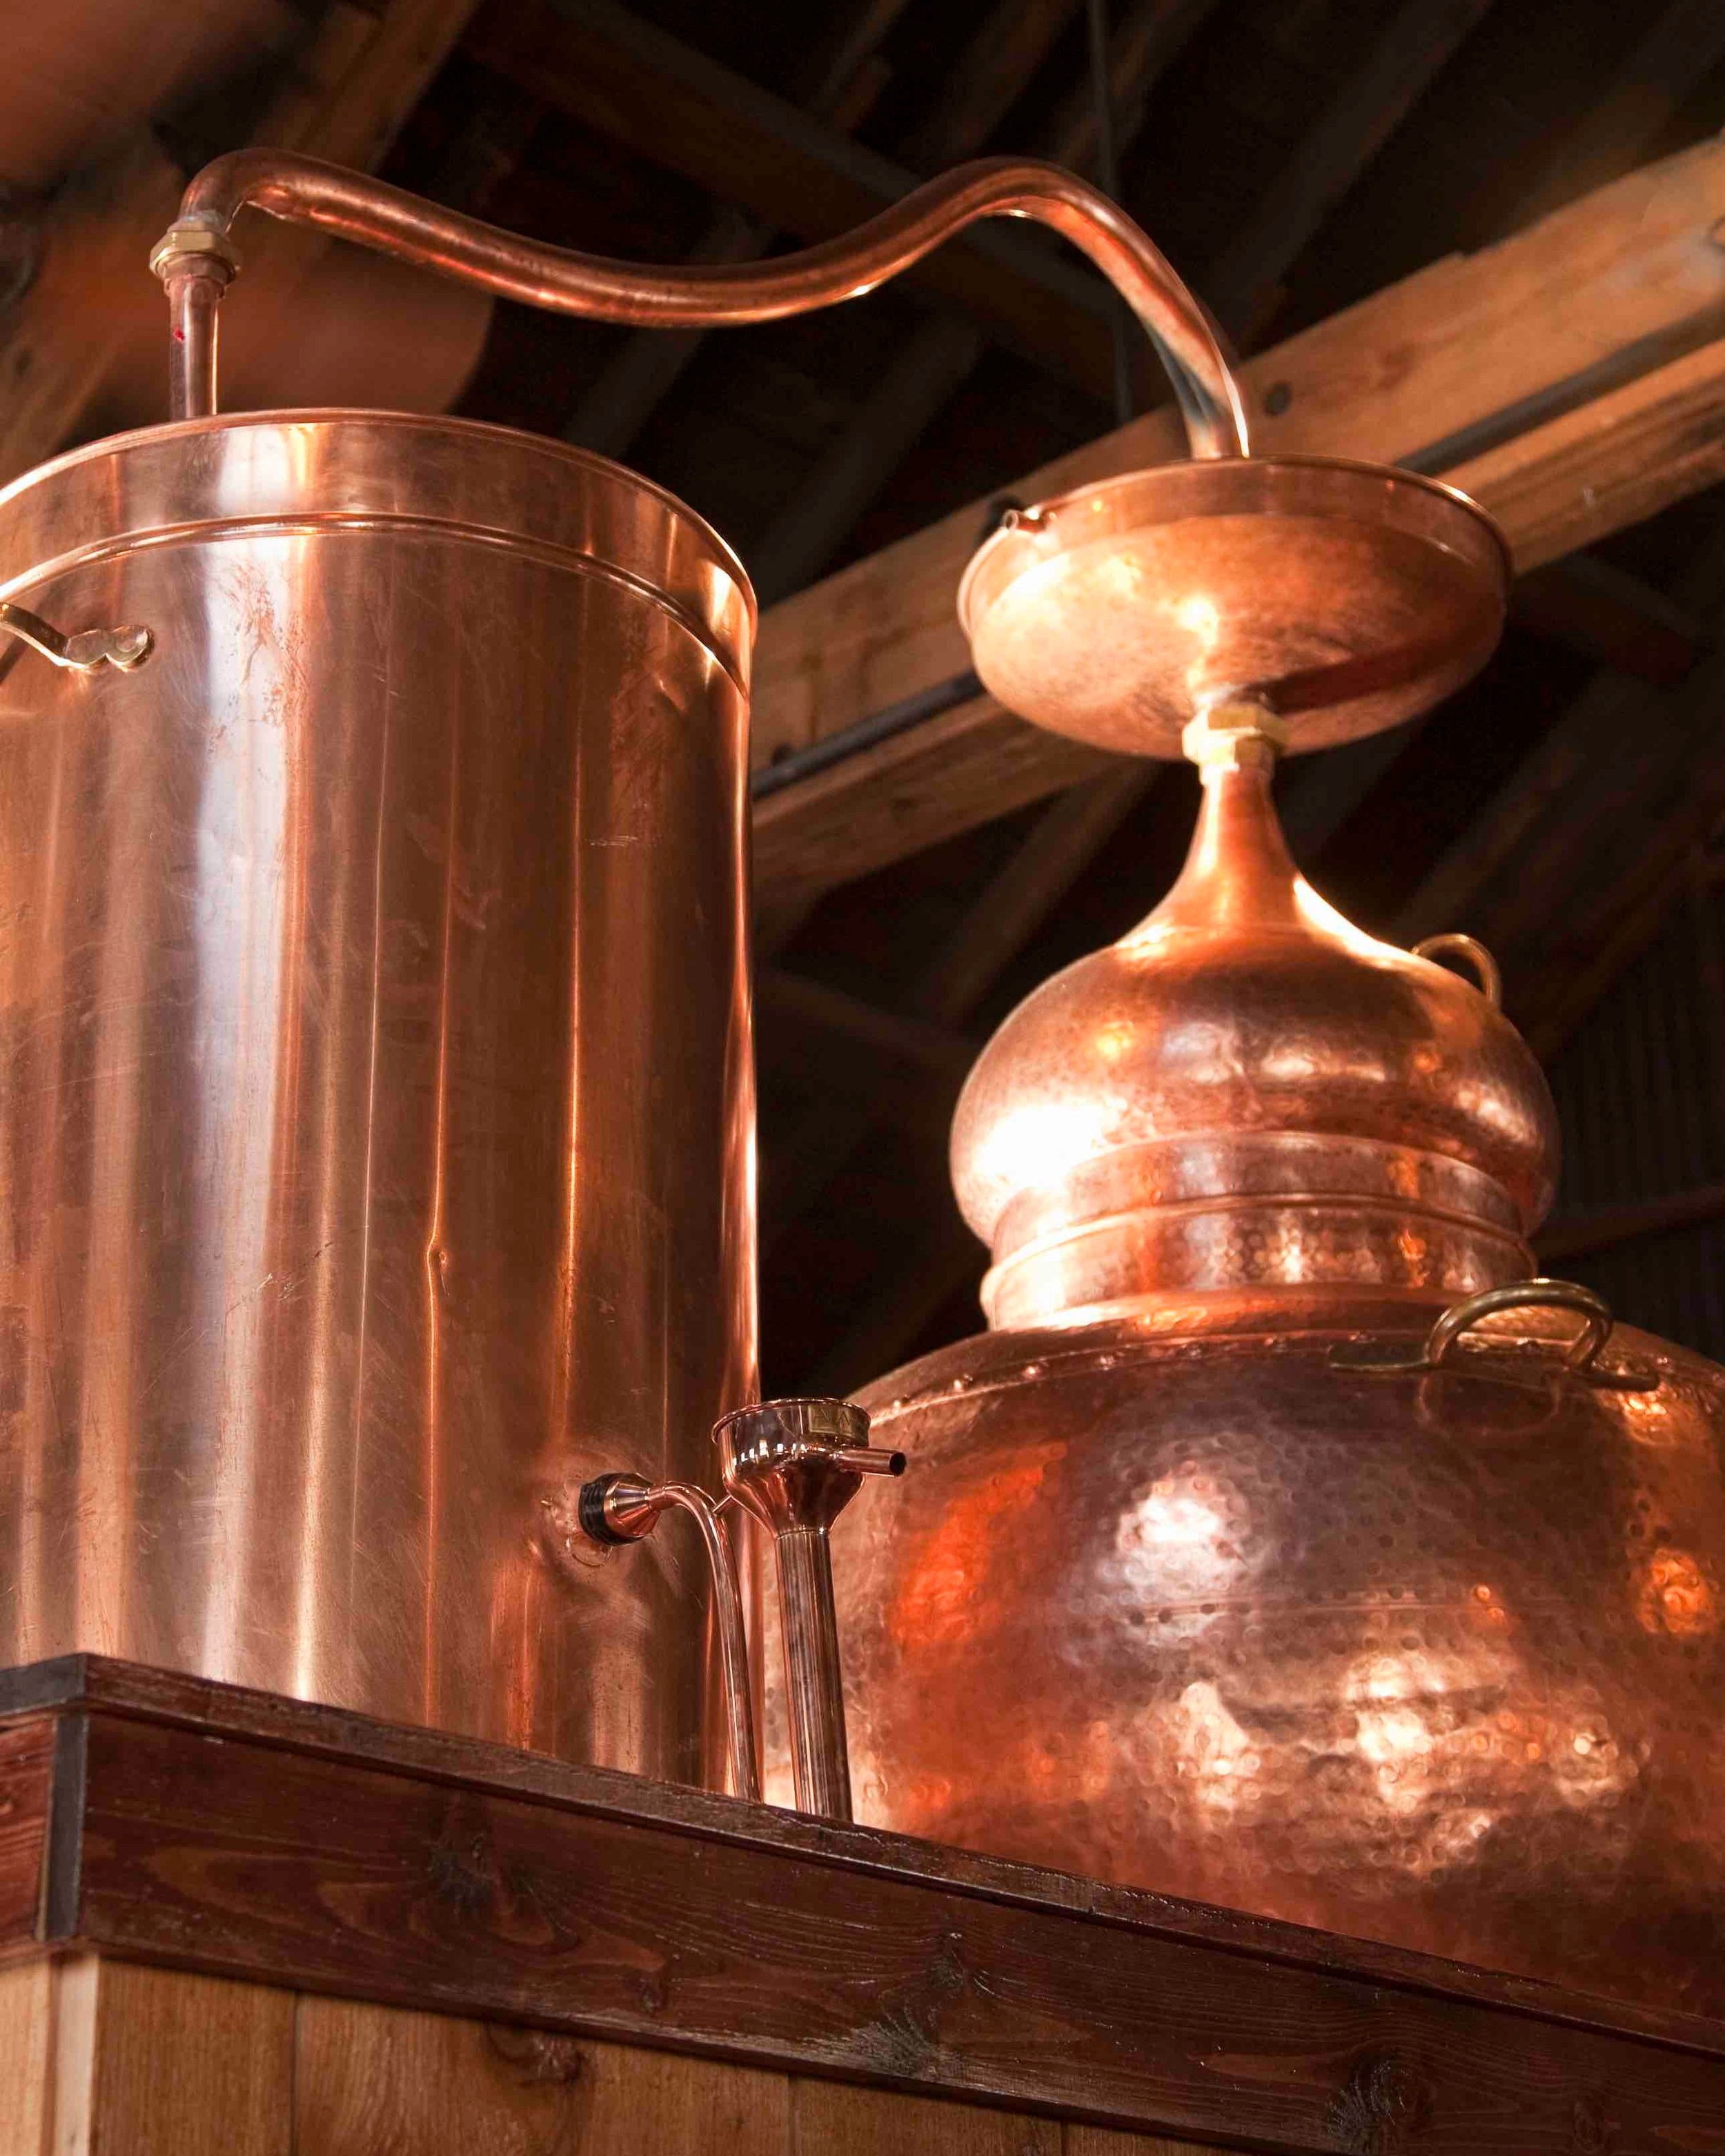 Key Parts of the Rum Still - The lentil. This unique shape at the top of the still (top right, below the copper tube) hides an inside channel that forces steam to flow upward in a spiral, while cold water runs across the top. This creates precise and consistent reflux.The swan's neck. This curved copper tube (at the top of the photo) carries the steam across to the condenser, where it is cooled.The condenser. This tank (on the left of the picture) is filled with a steady stream of cold water, turning hot steam into cool liquid high-proof rum.